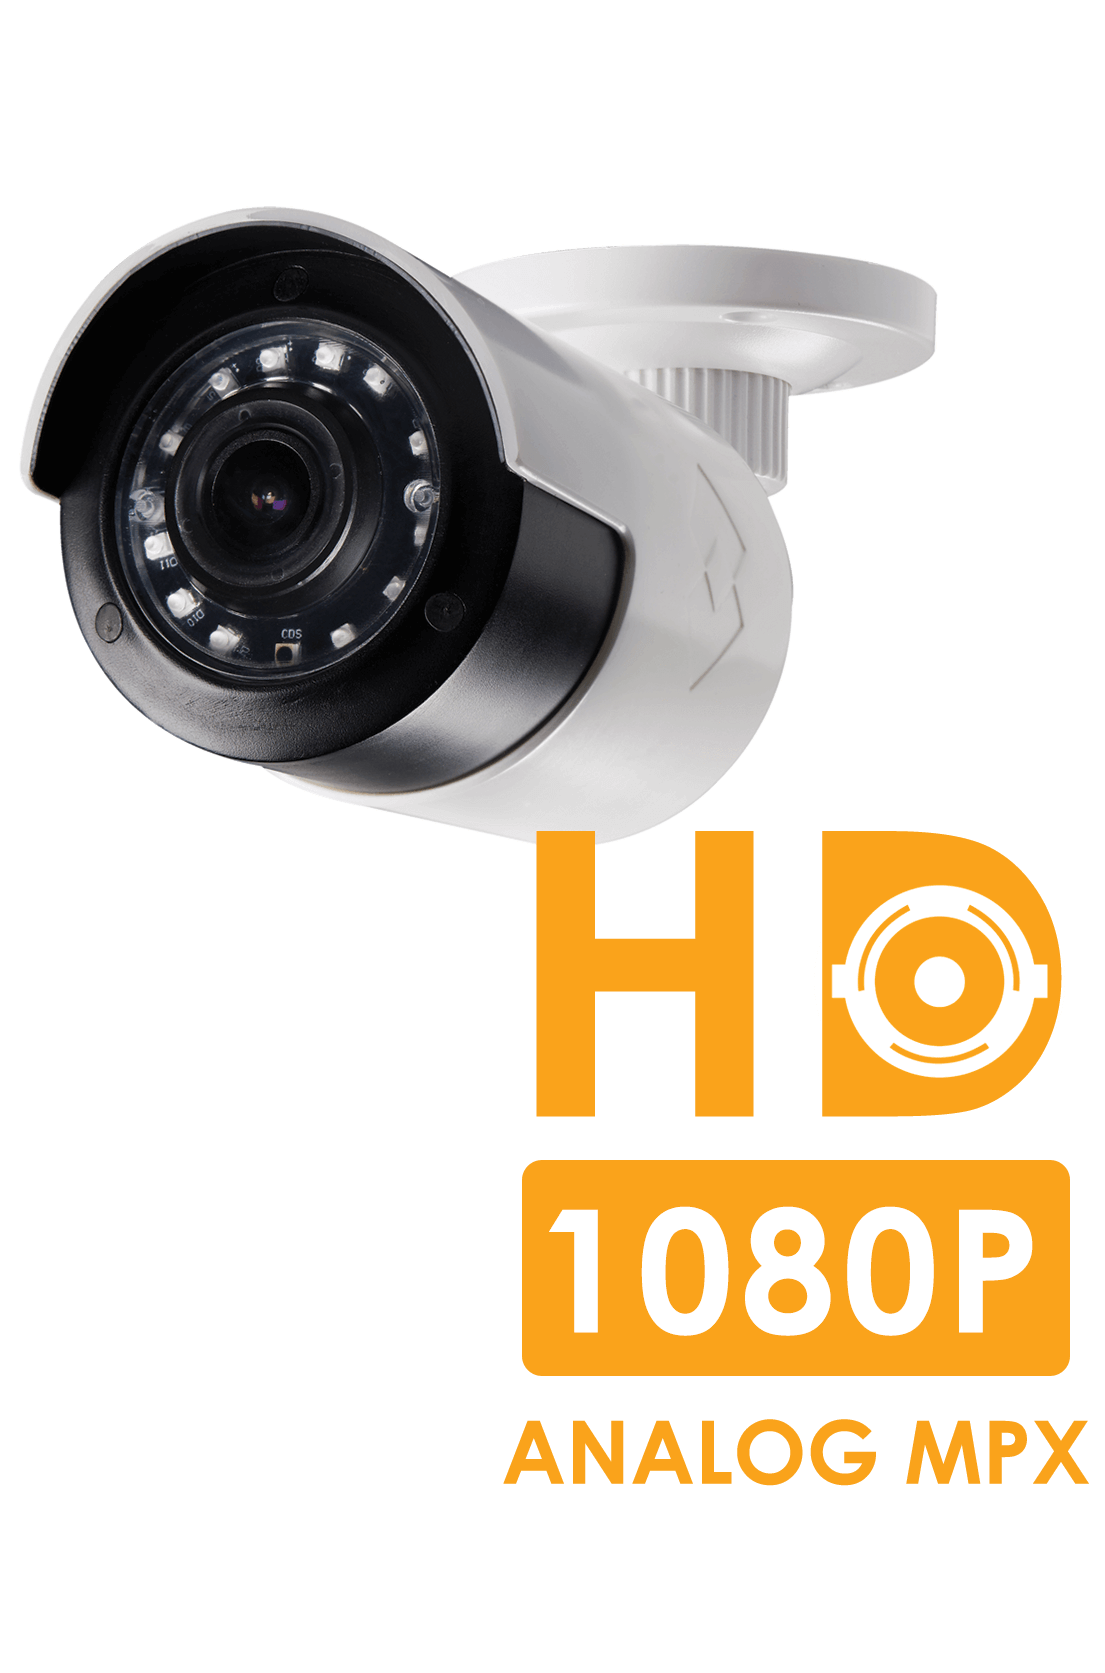 1080p HD video for crisp, detailed footage